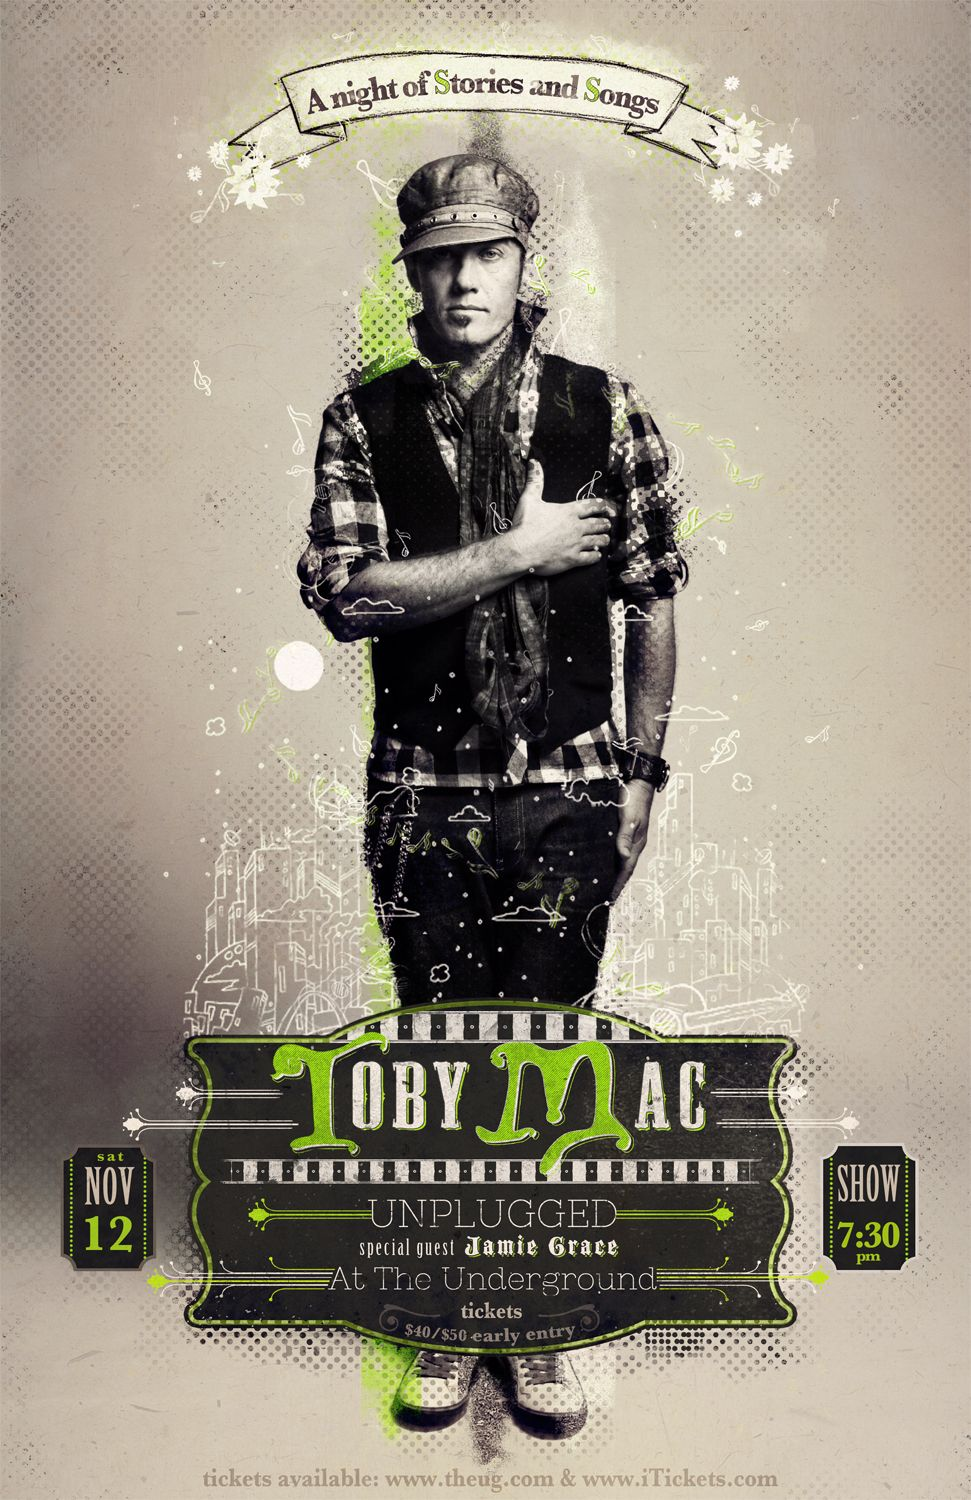 For my internship, toby mac poster. Recent Work